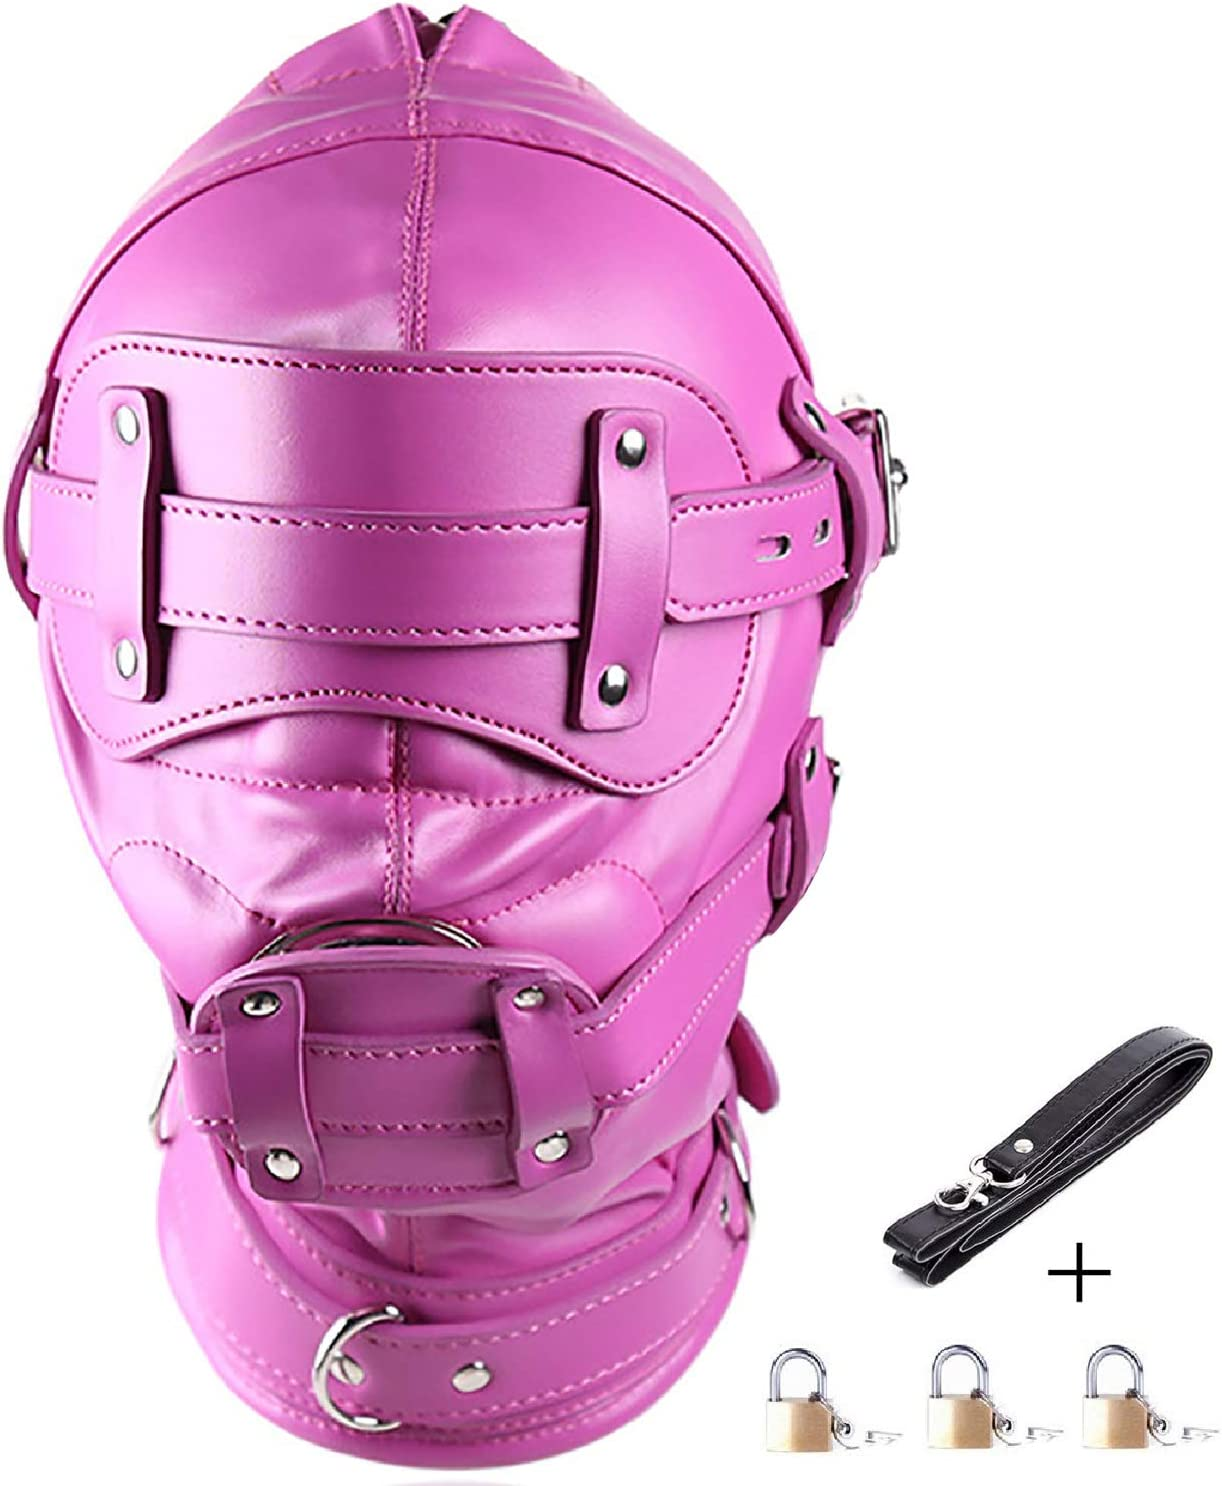 Strict Head Harness with inch Ball Gag Mask Bondage Synthetic Leather Muzzle NEW